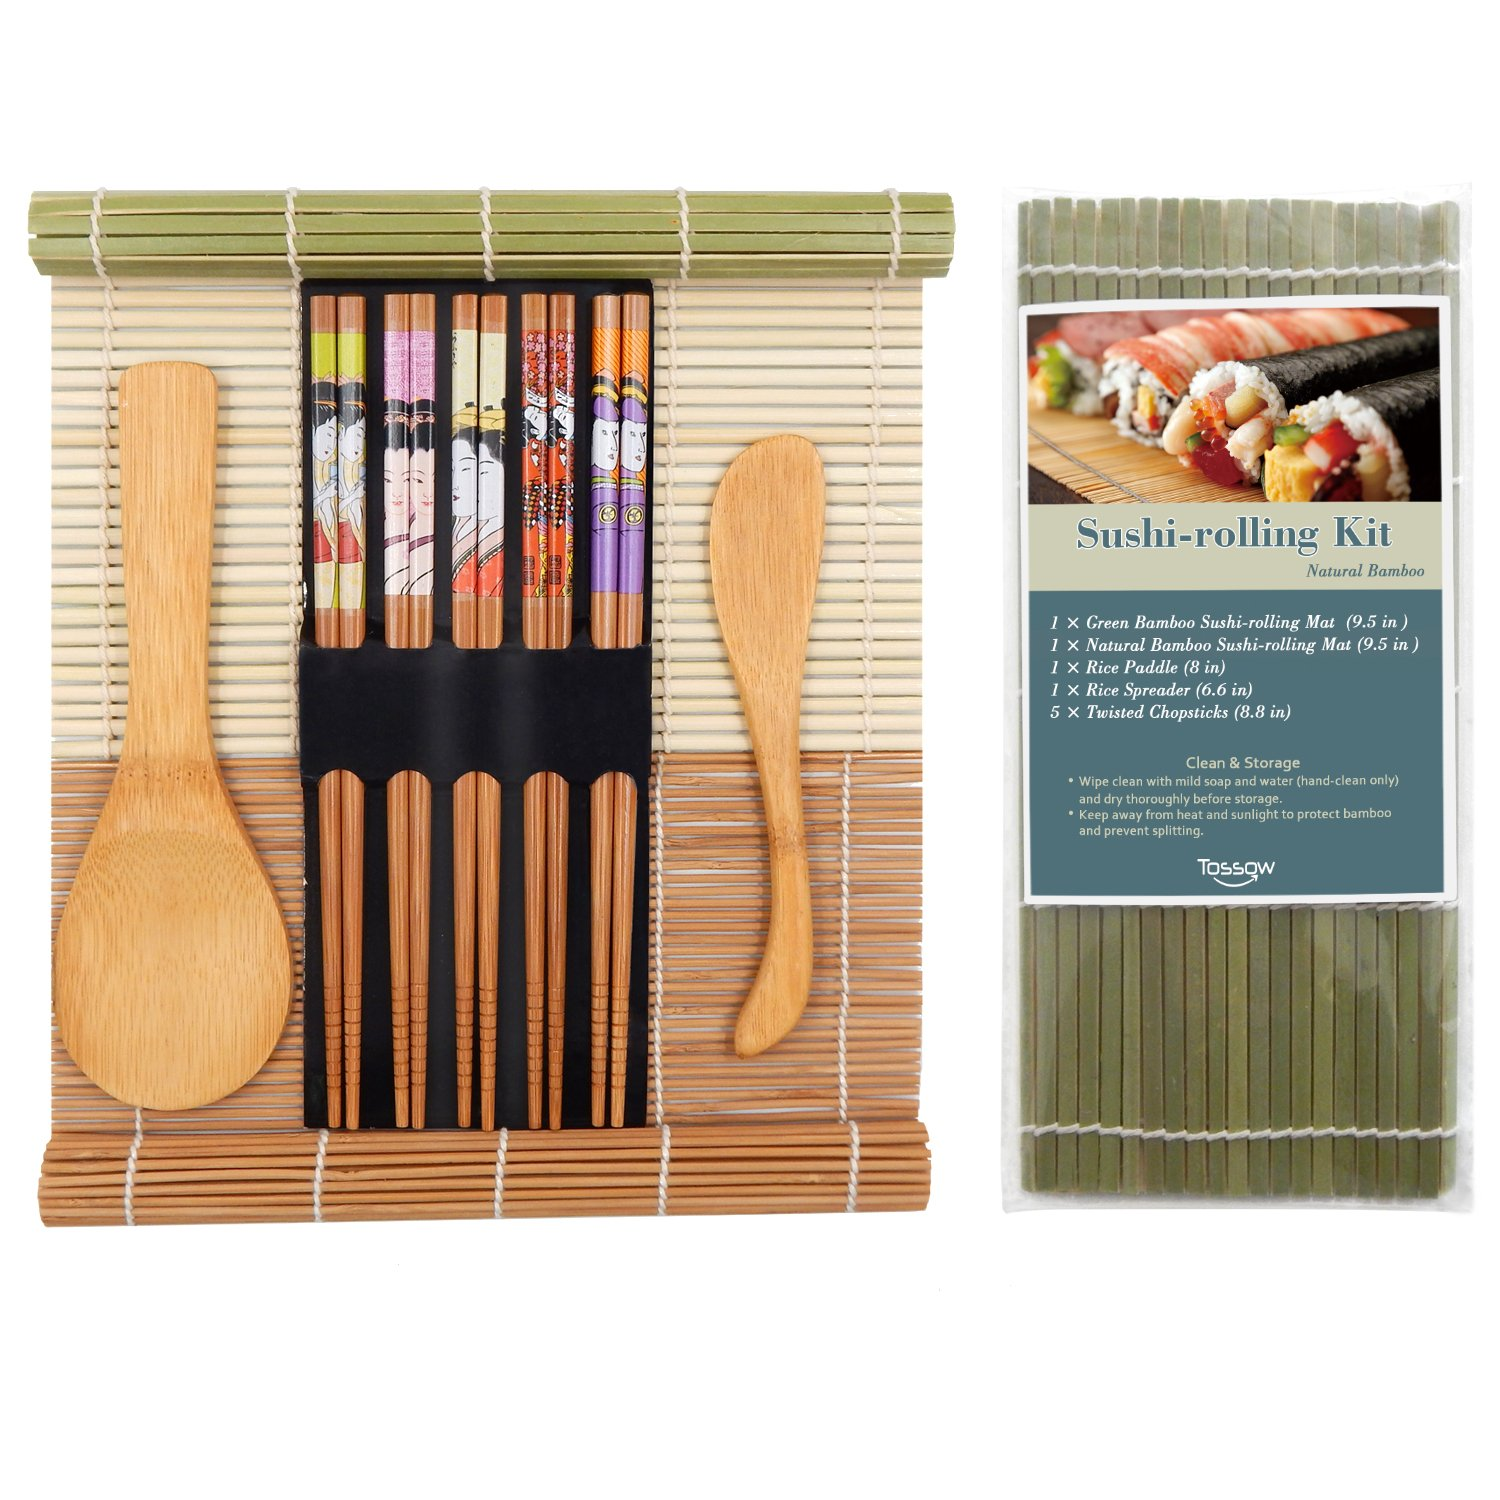 T TOSSOW Sushi Making Kit for Beginner Included 2 Sushi Rolls Mats - 1 Rice Paddle - 1 Rice Spreader and 5 Pairs Chopsticks,100% Natural Bamboo Sushi Kit Maker